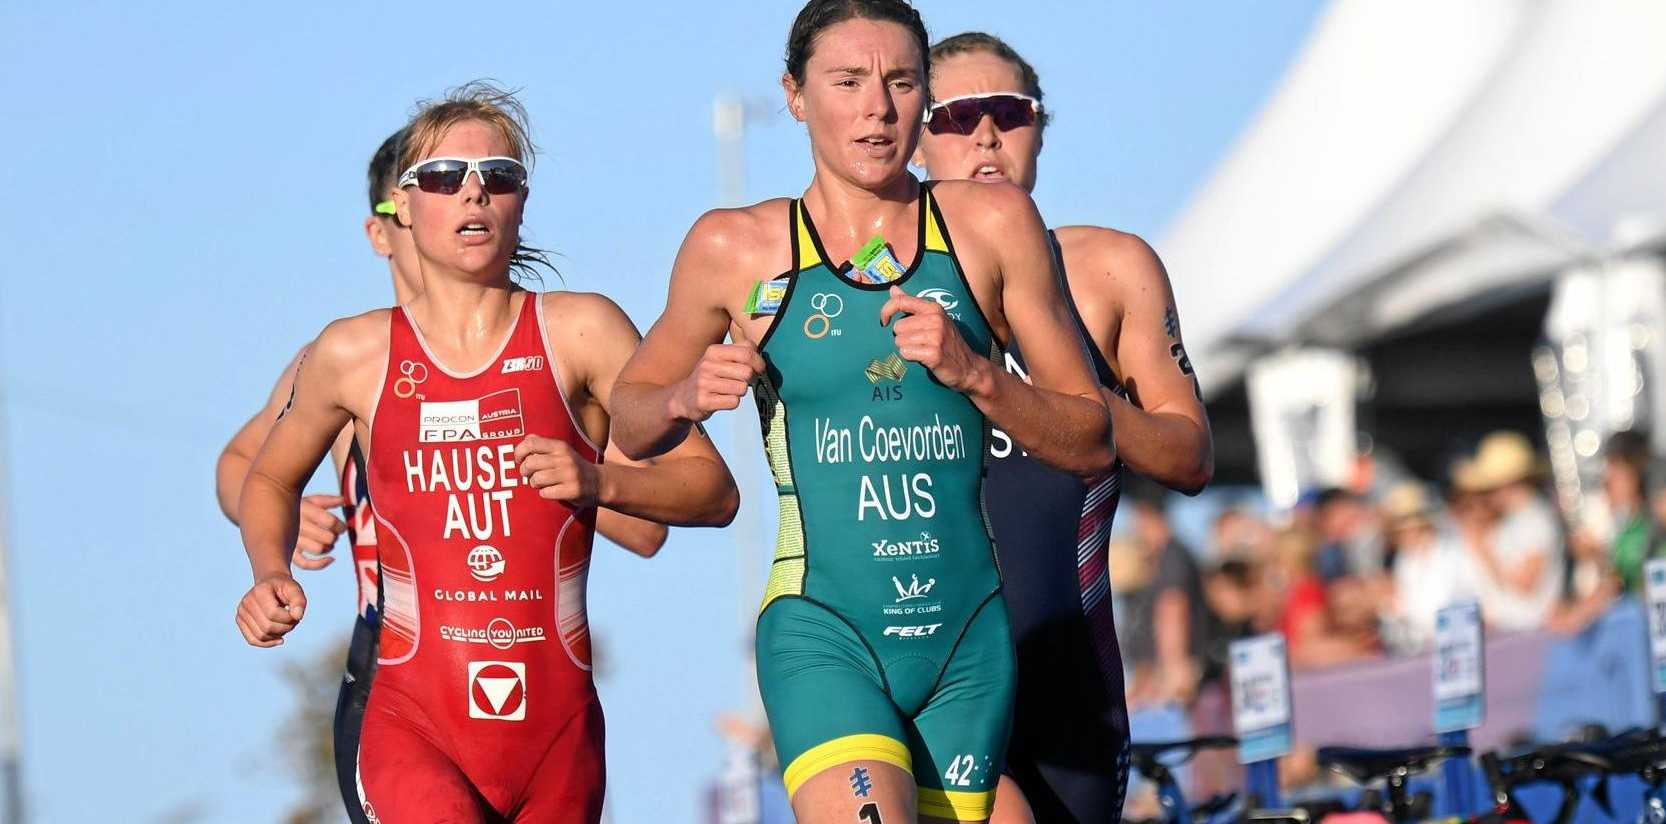 HIGH HOPES: Natalie Van Coevorden in action at the ITU World Triathlon Series Grand Final on the Gold Coast last year. She's keen to fire at the Mooloolaba Triathlon this weekend.